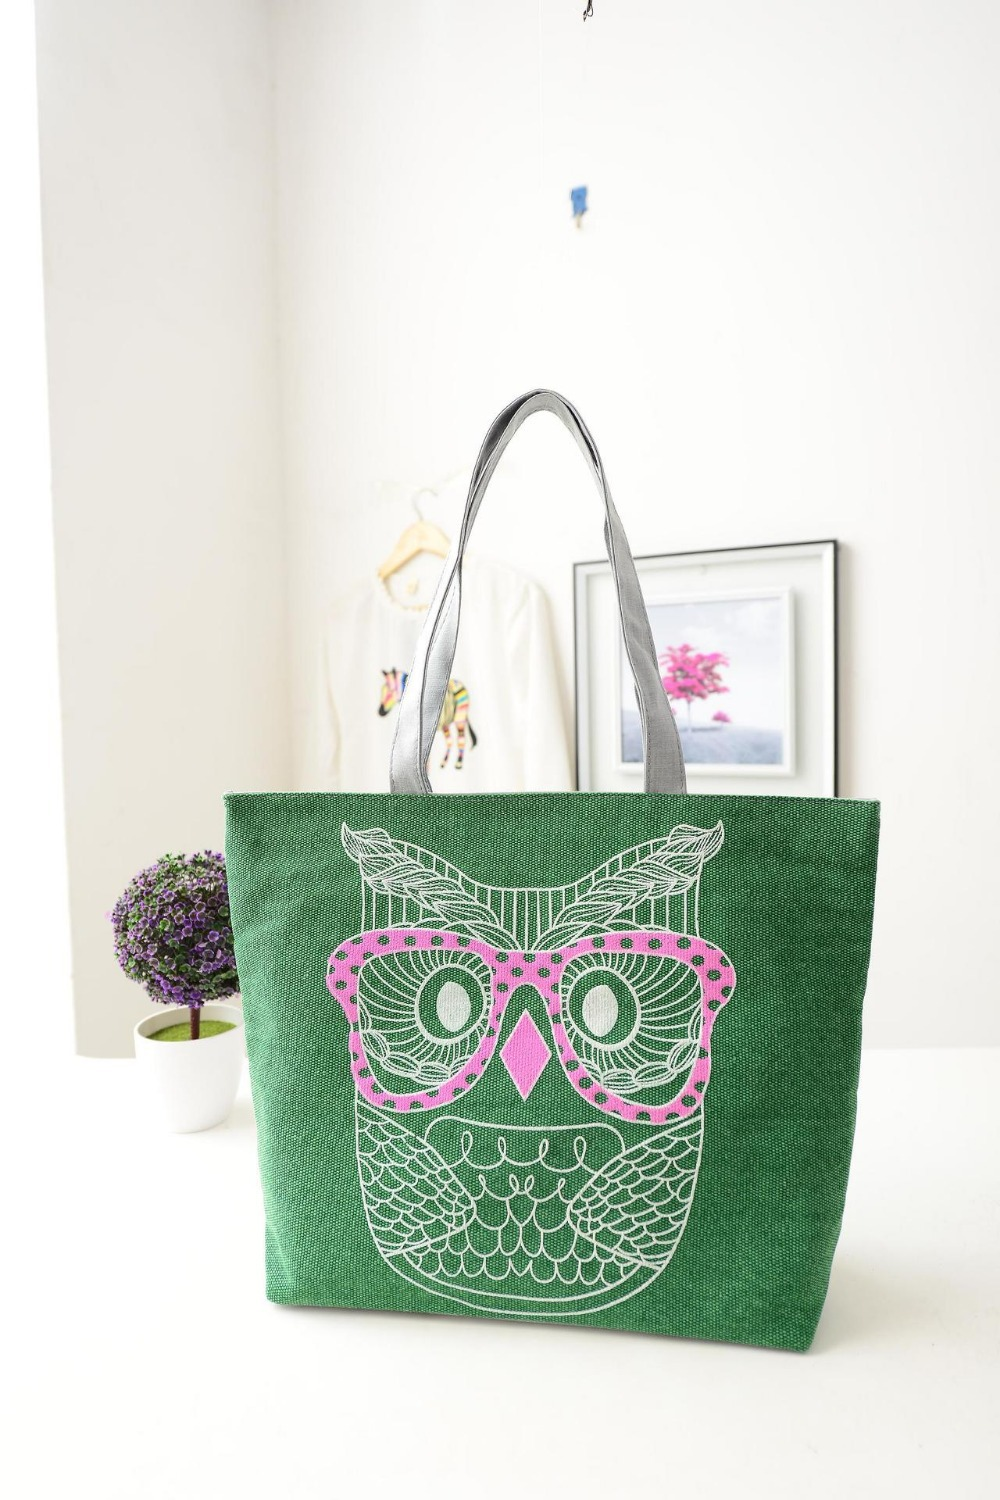 2014 brand designer owl printed women canvas bags large cotton school bag tote wholesale price TD-14(China (Mainland))